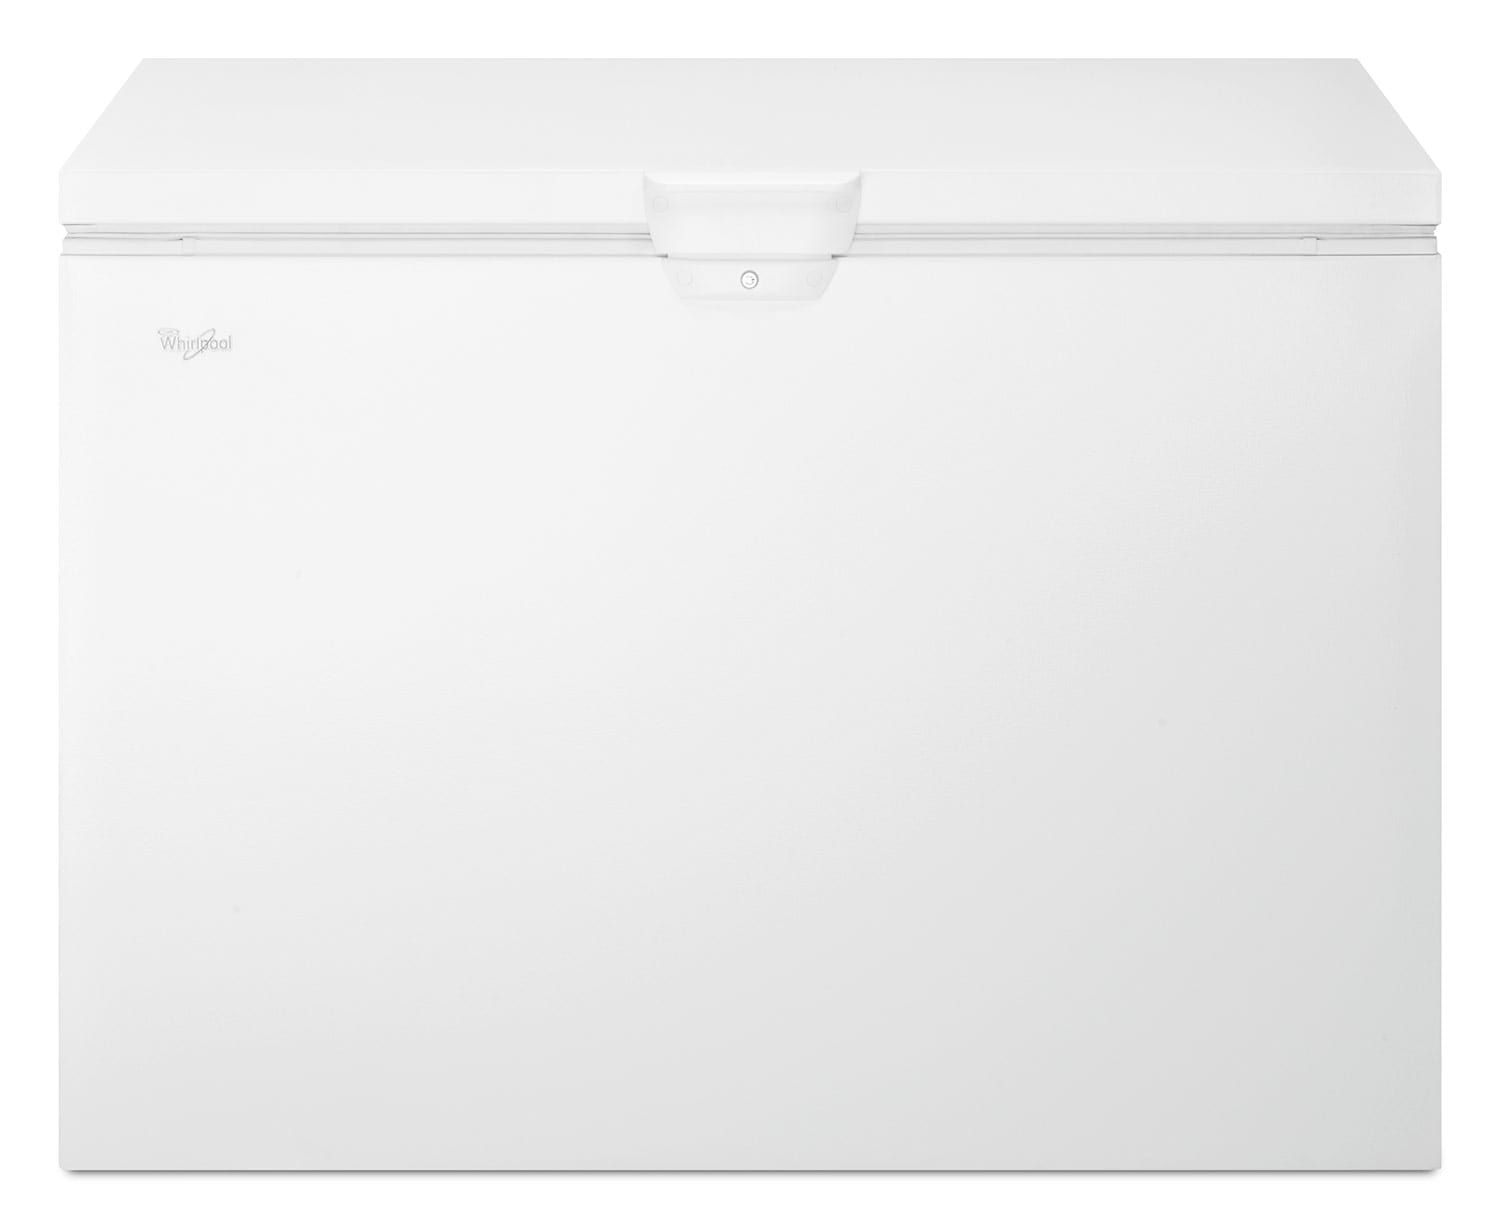 Whirlpool 15 Cu. Ft. Chest Freezer – WZC3115DW